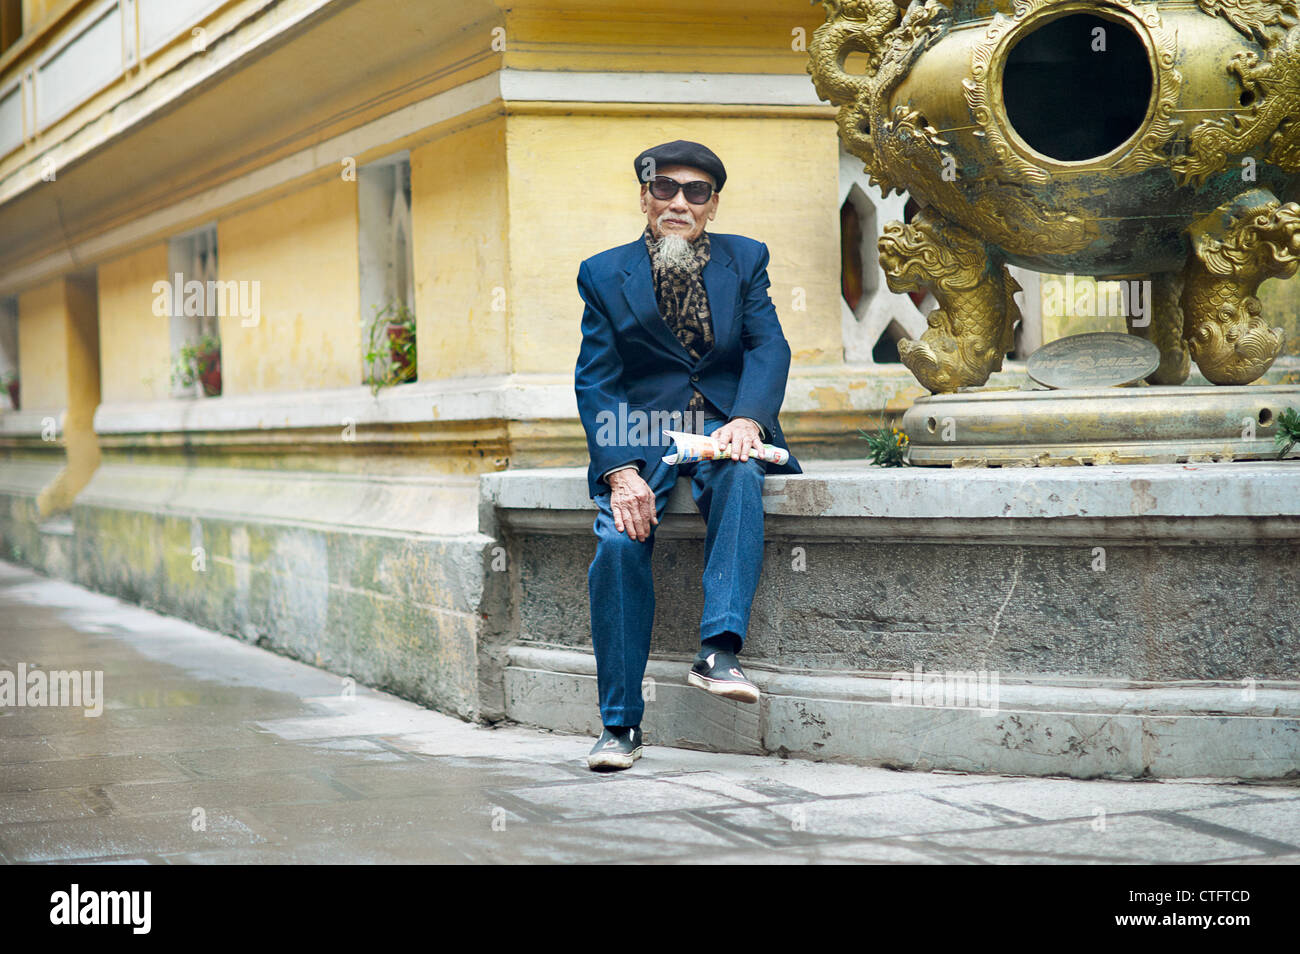 An old man in a blue suit, wearing an artist hat and sunglasses at a temple in Vietnam. - Stock Image